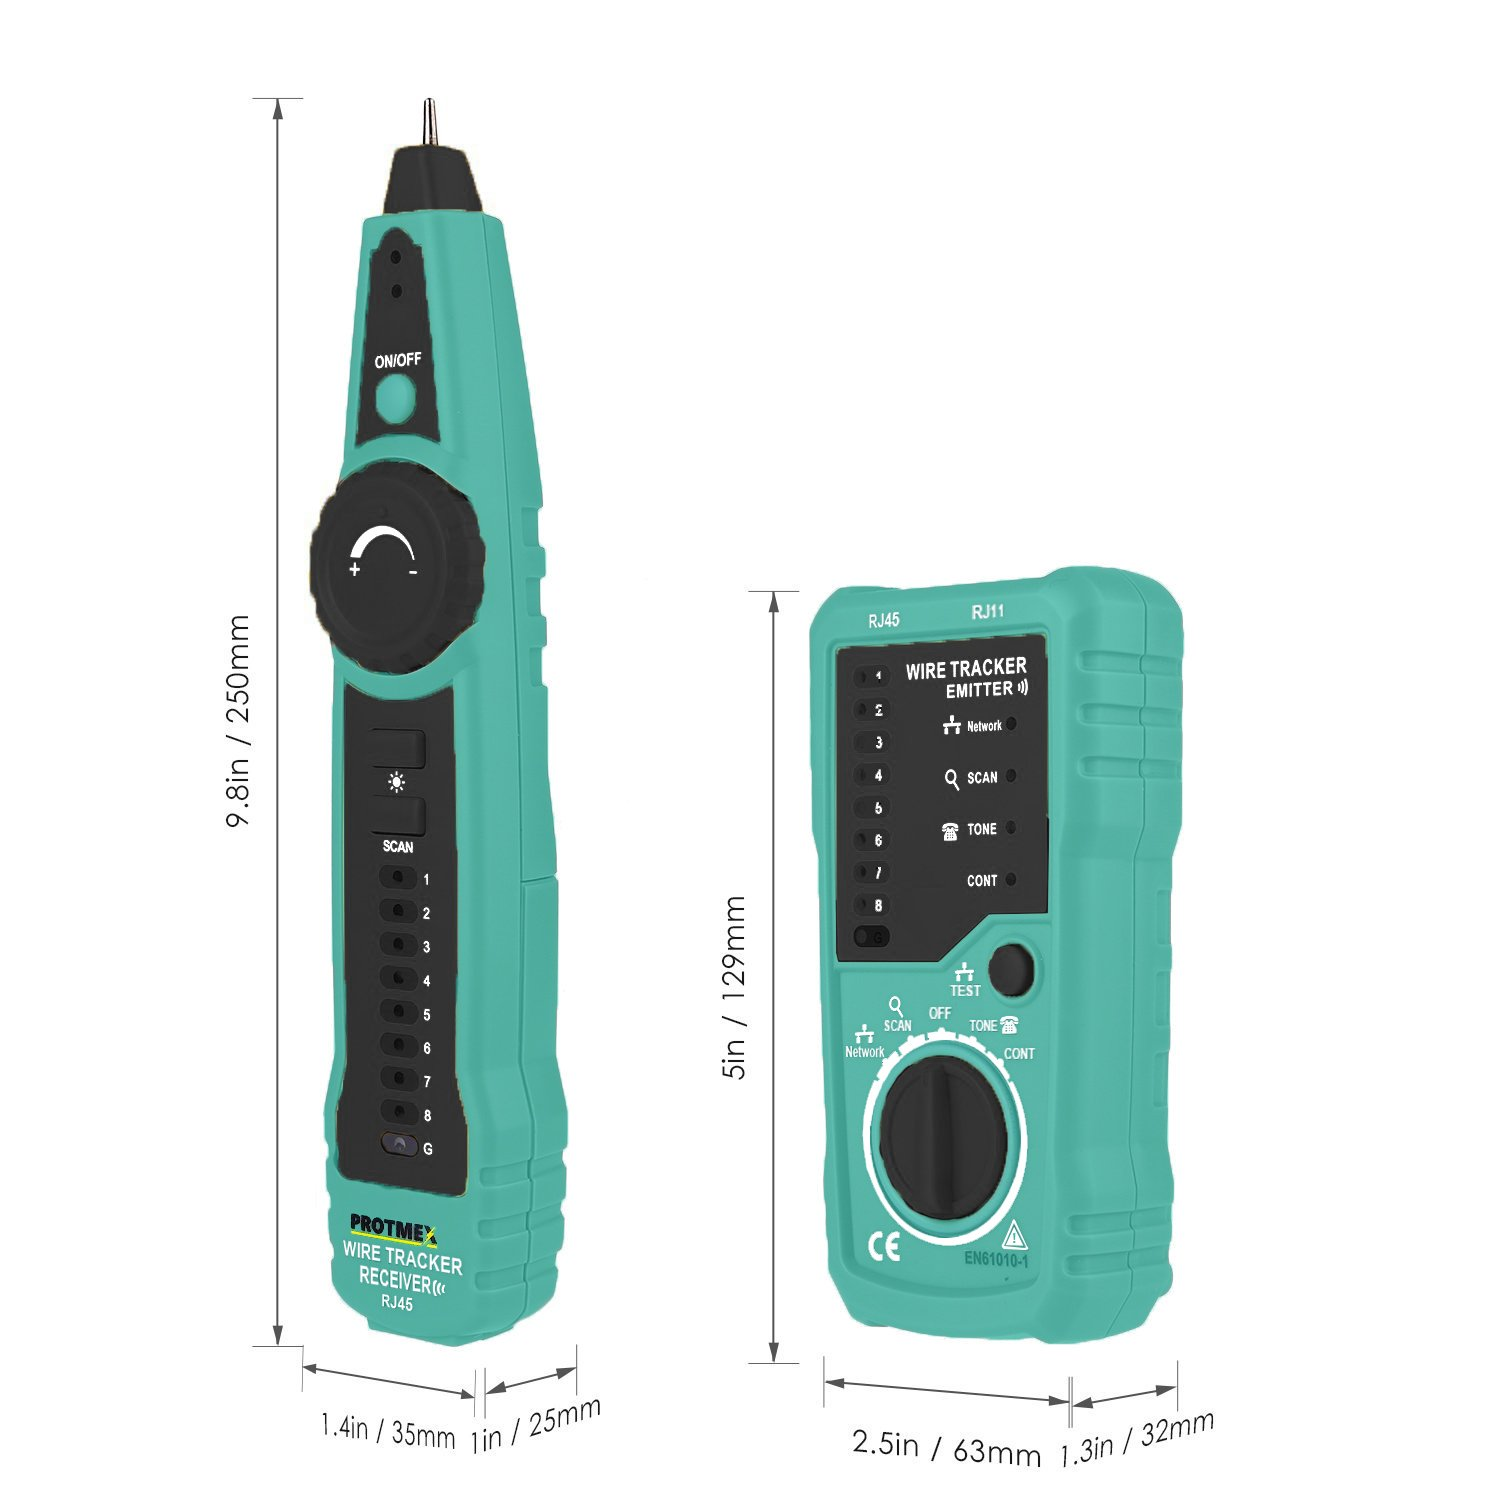 Wire Tracker, Protmex FY869 RJ11 RJ45 Cable Tester Multifunction ...